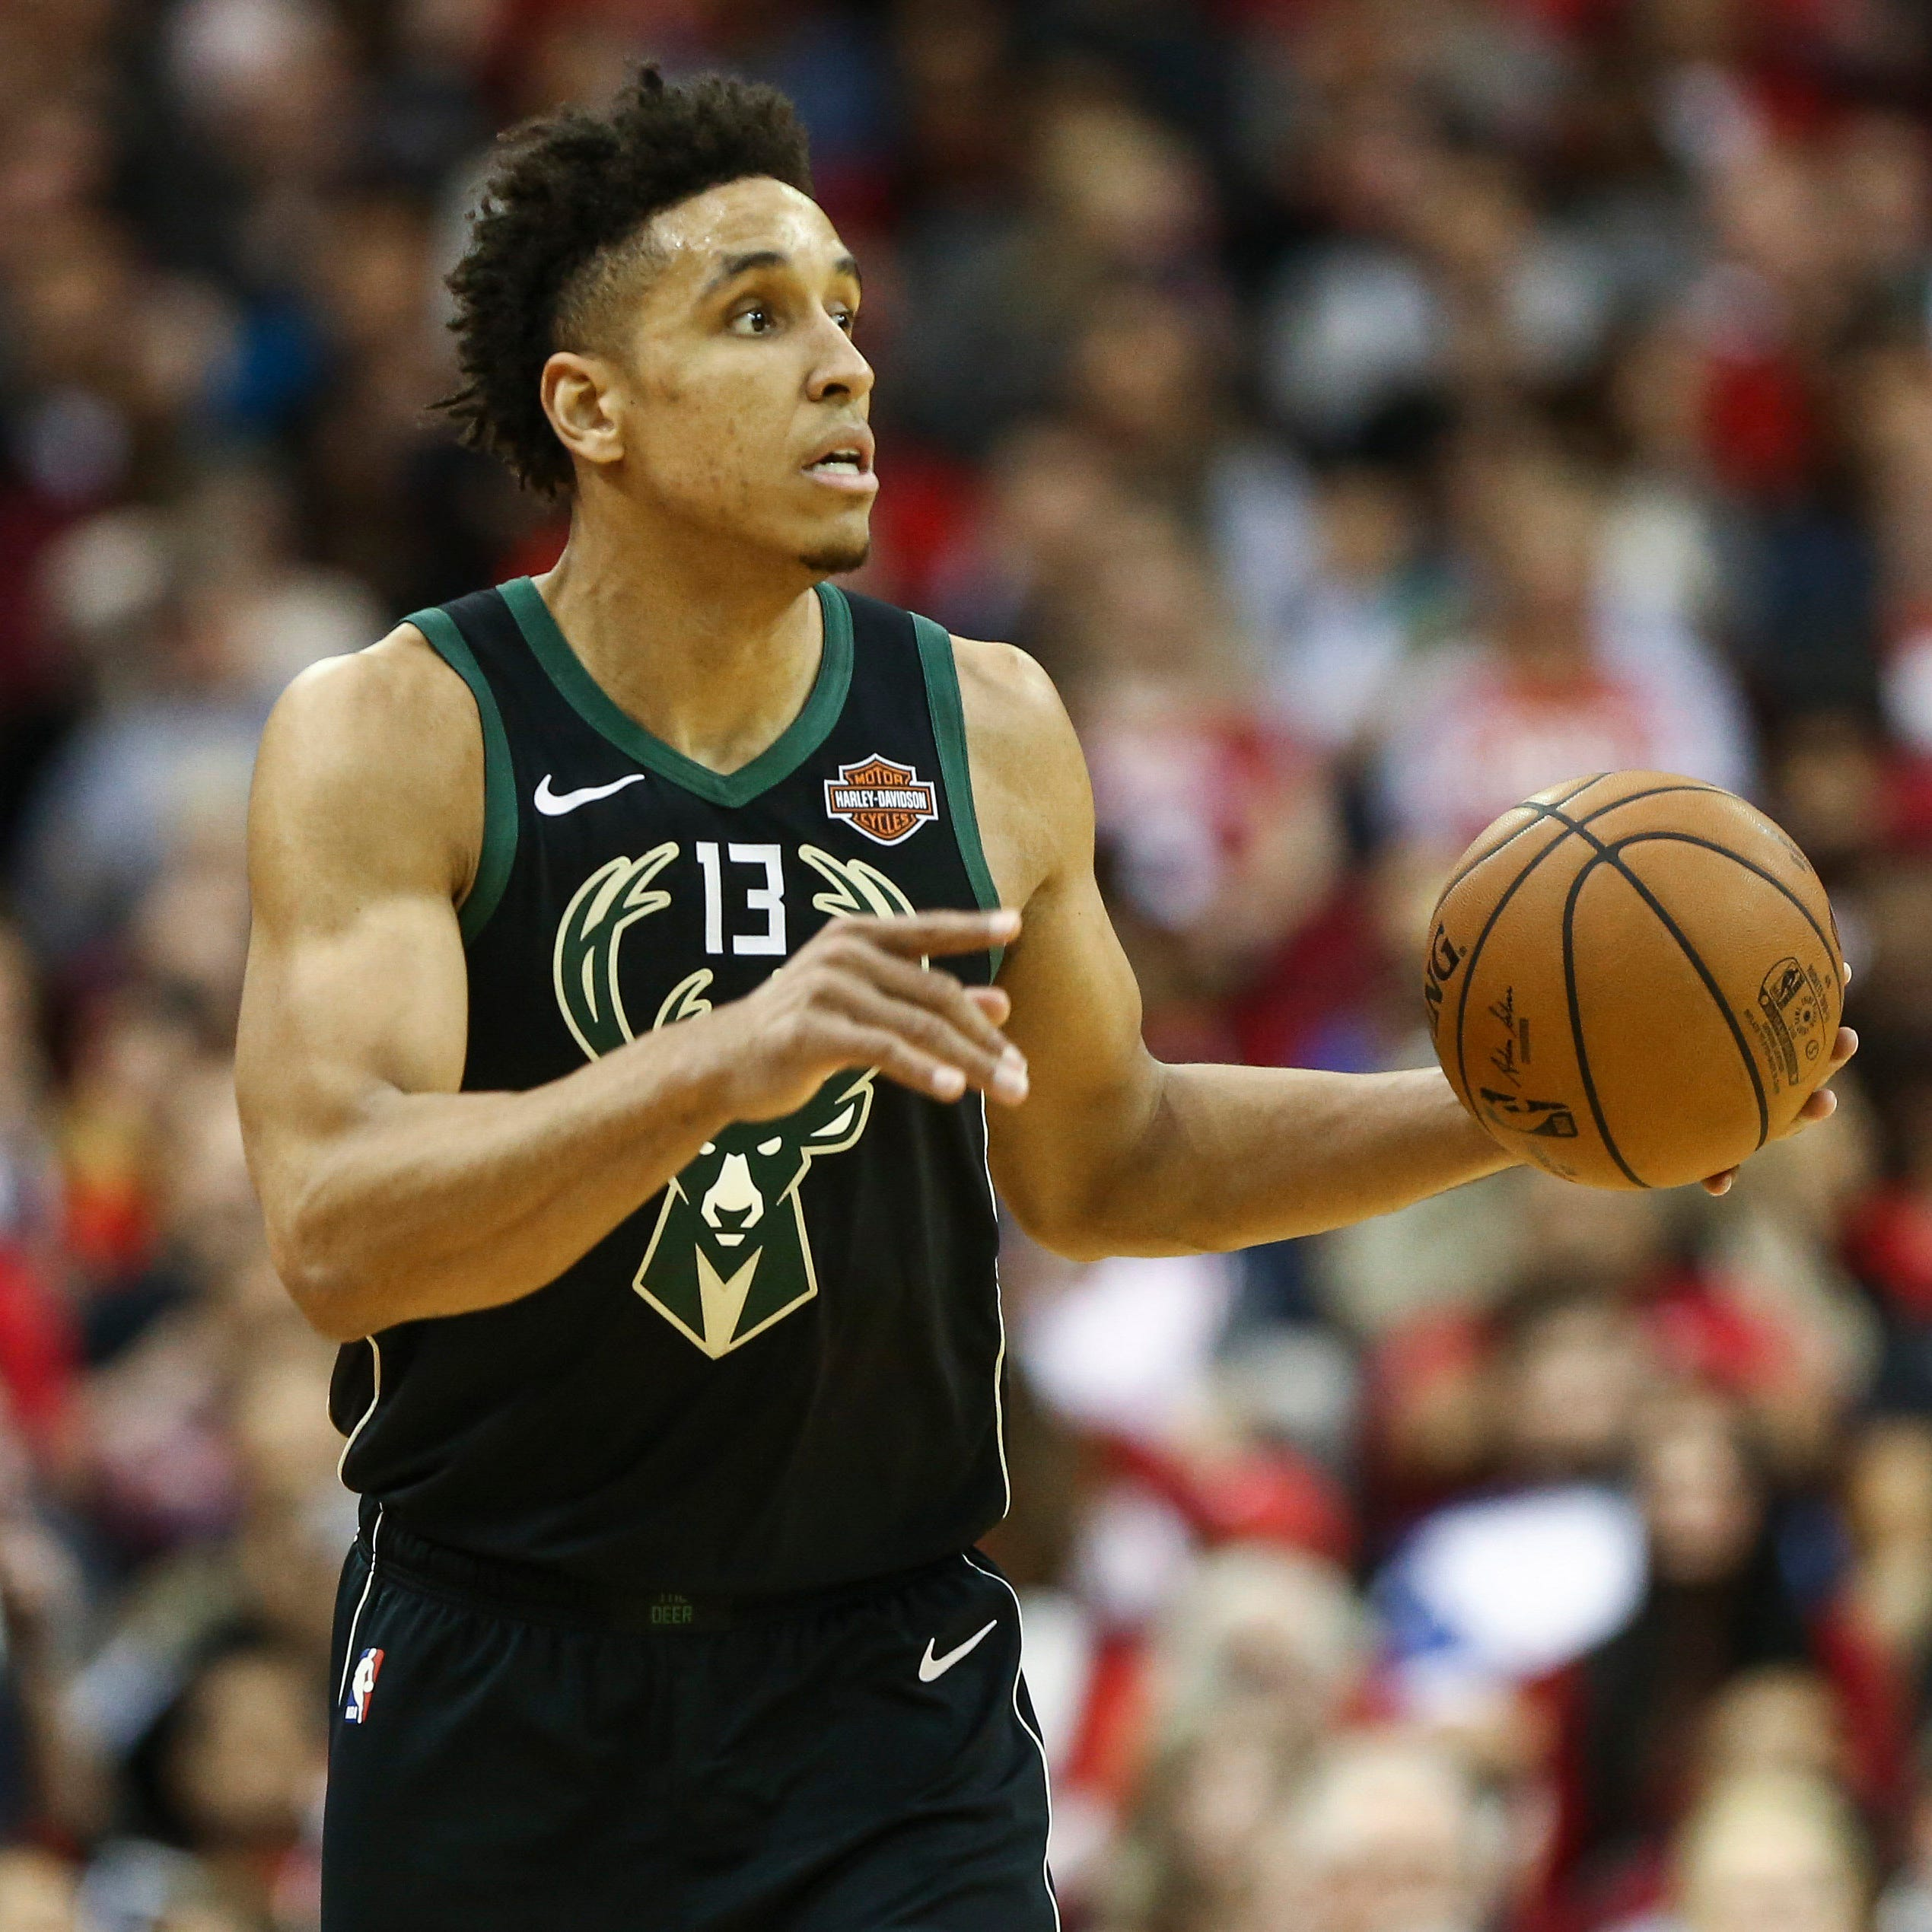 Malcolm Brogdon of the Bucks calls out Milwaukee for racism. What do we do with that?